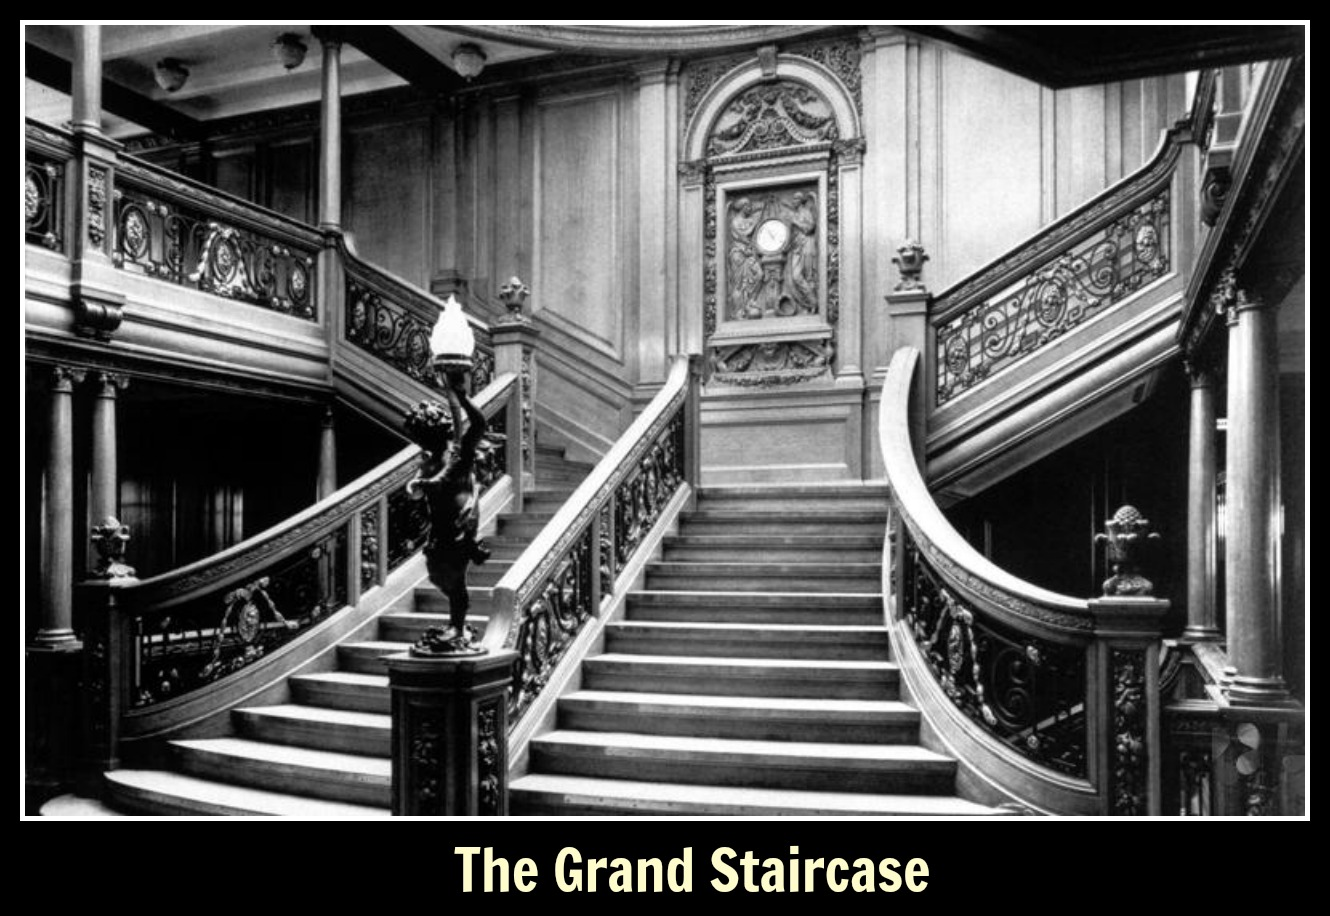 titanic original-grand-staircase-Titanic text.jpg